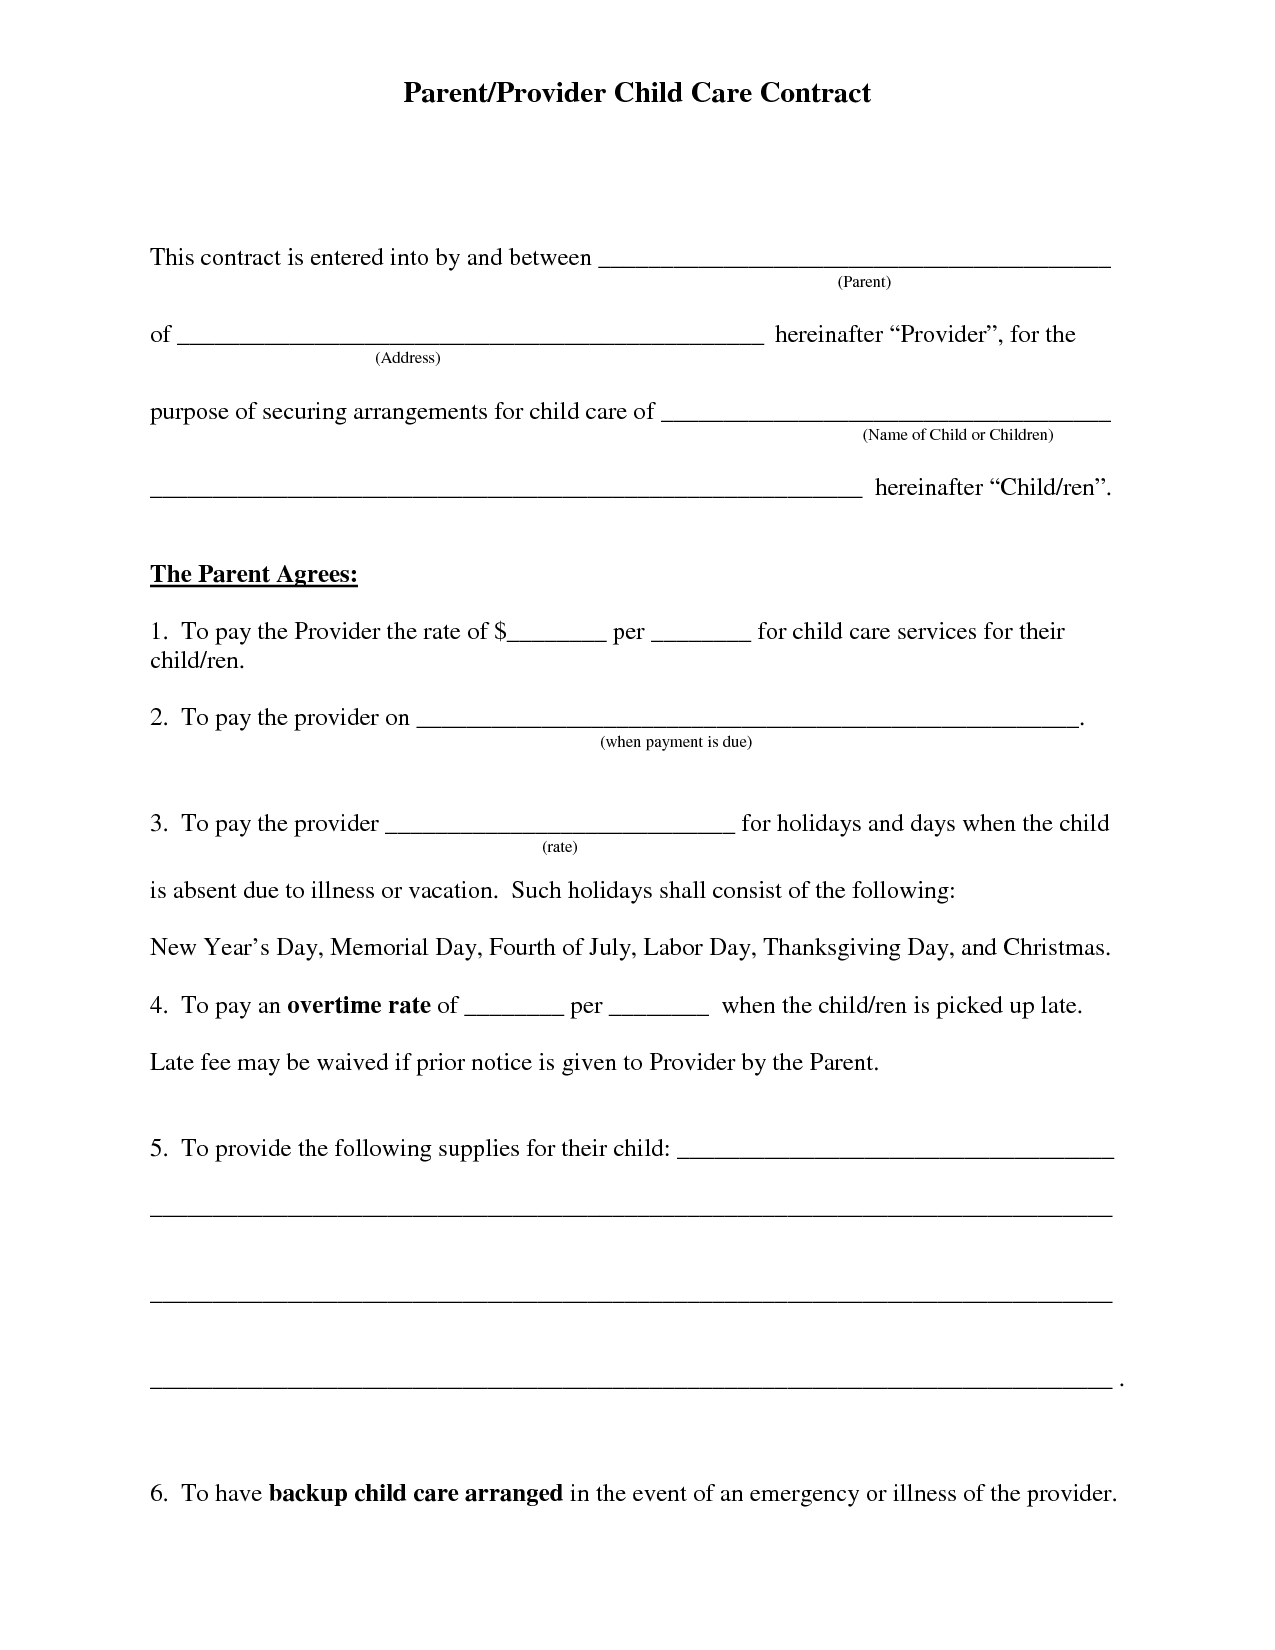 Free Daycare Contract Forms   Daycare Forms   Daycare Contract - Free Printable Daycare Forms